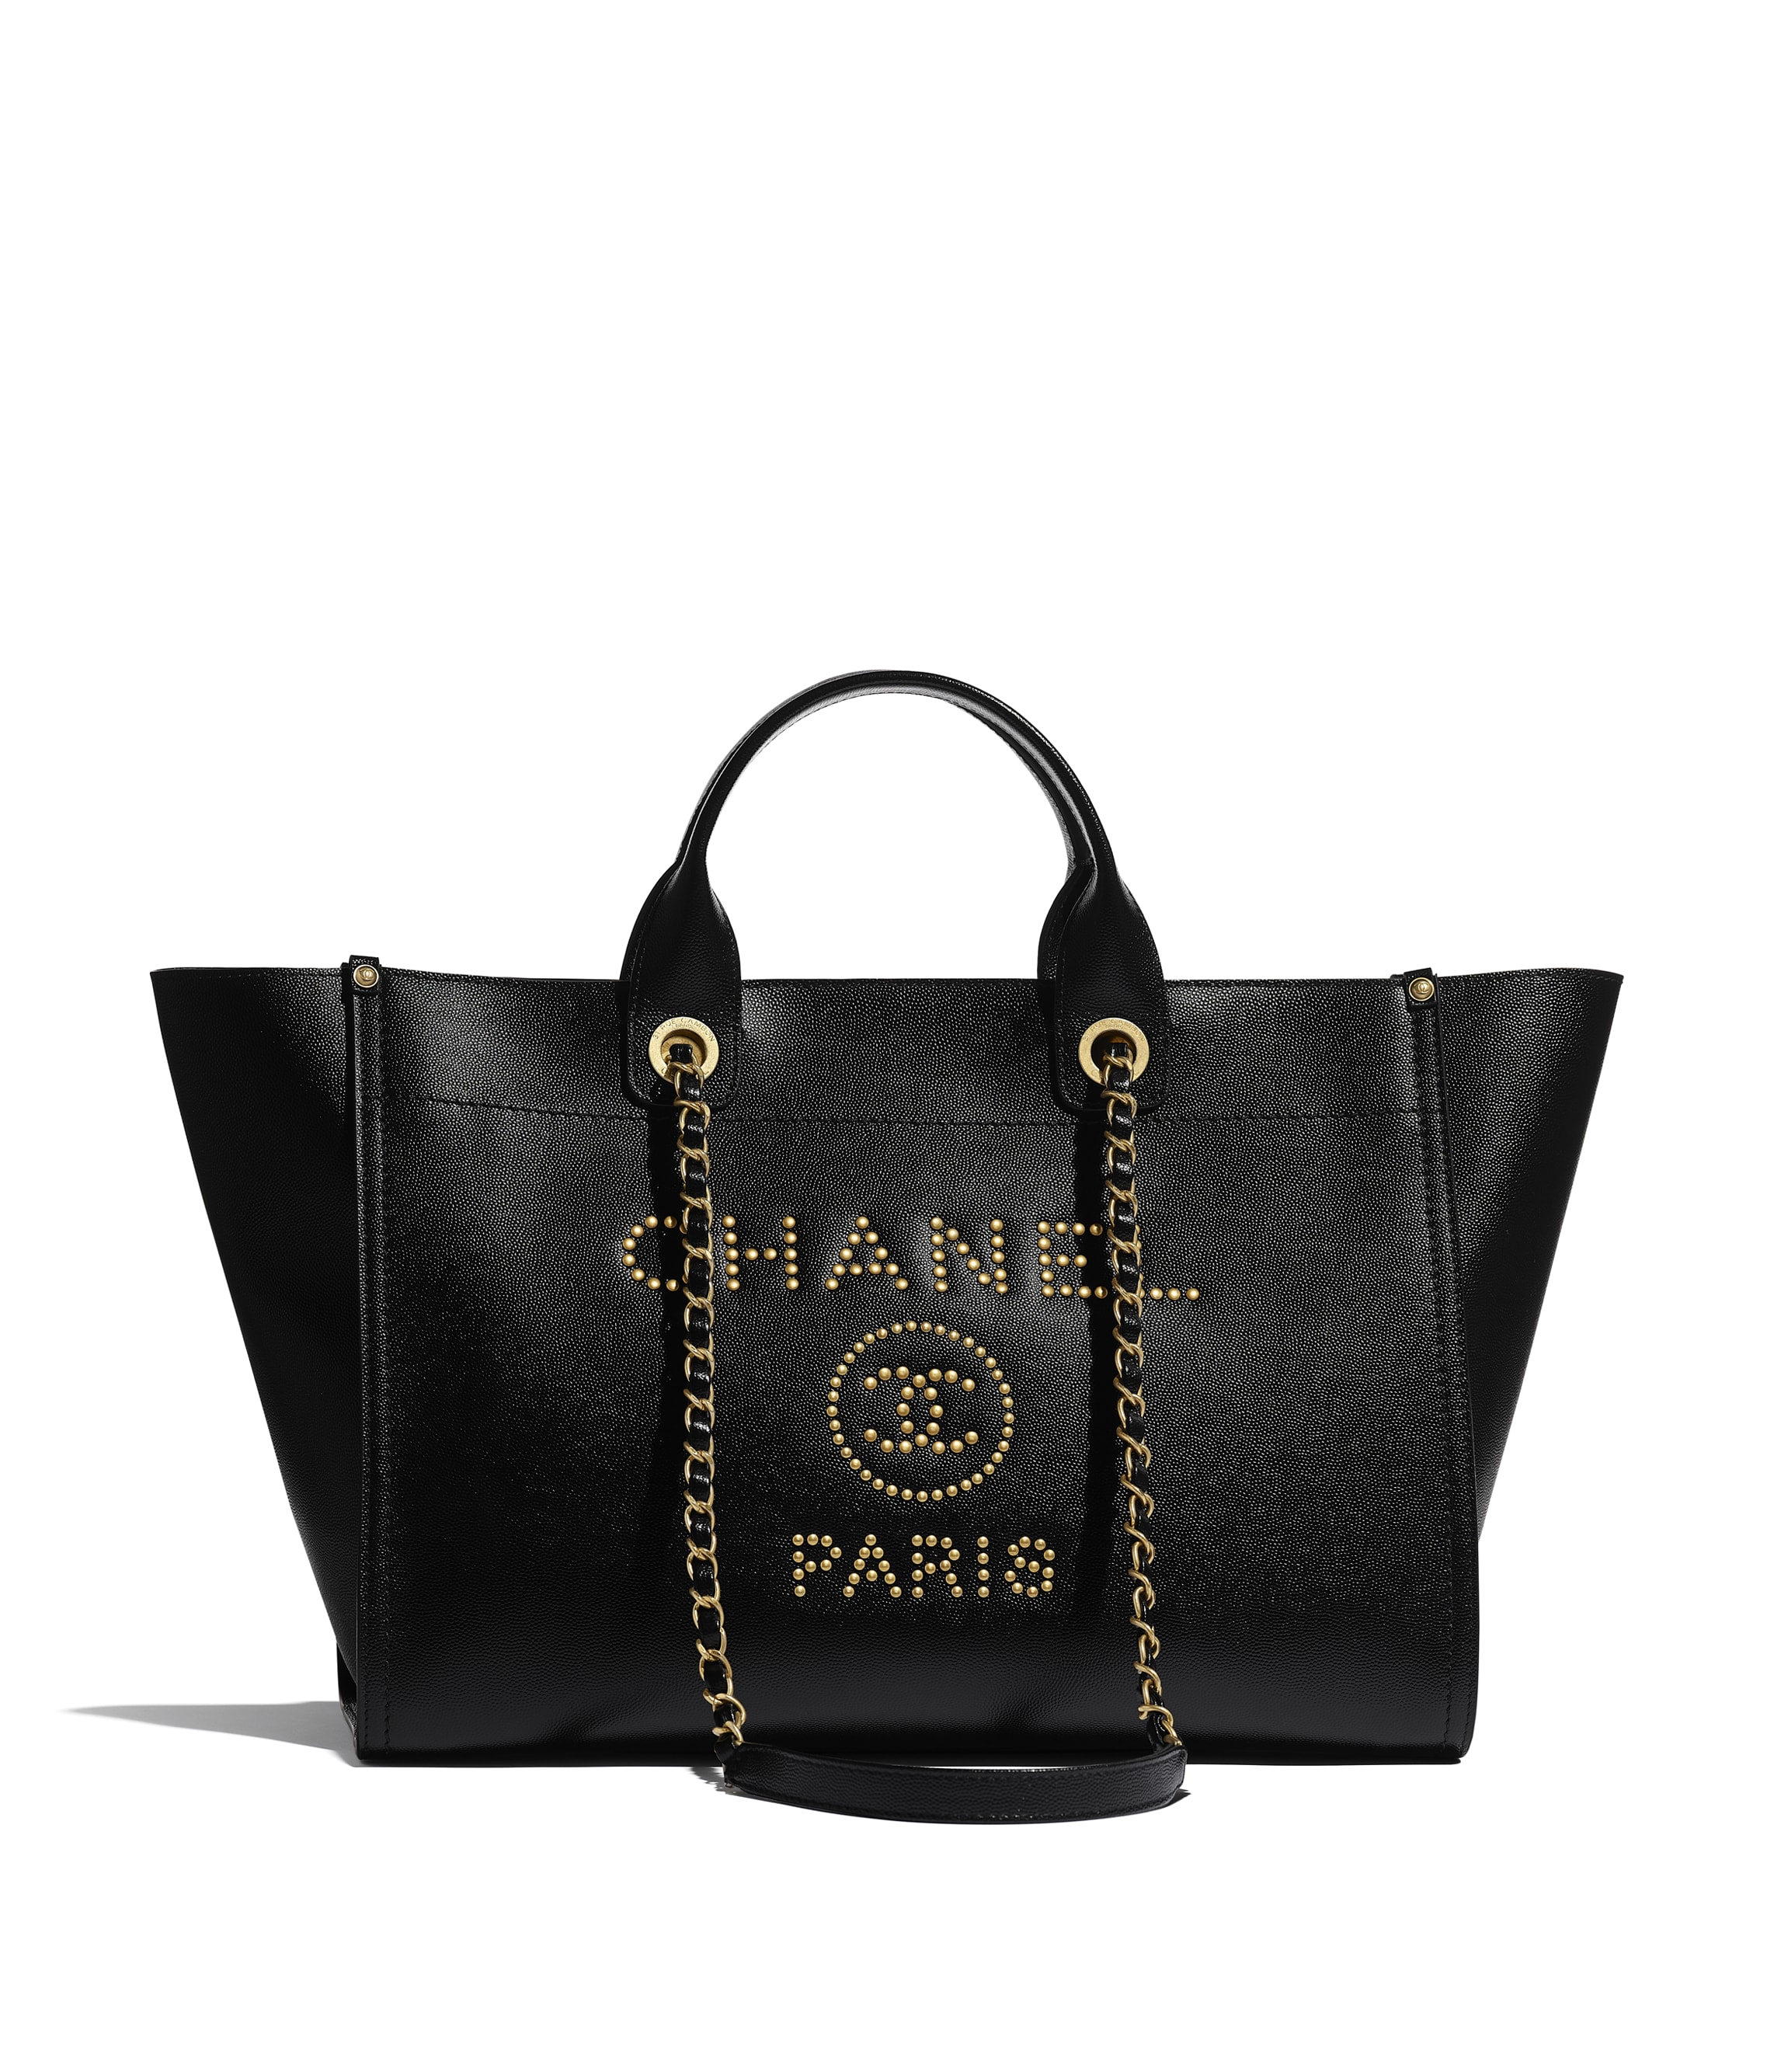 564fc7997 New This Season - Handbags - CHANEL